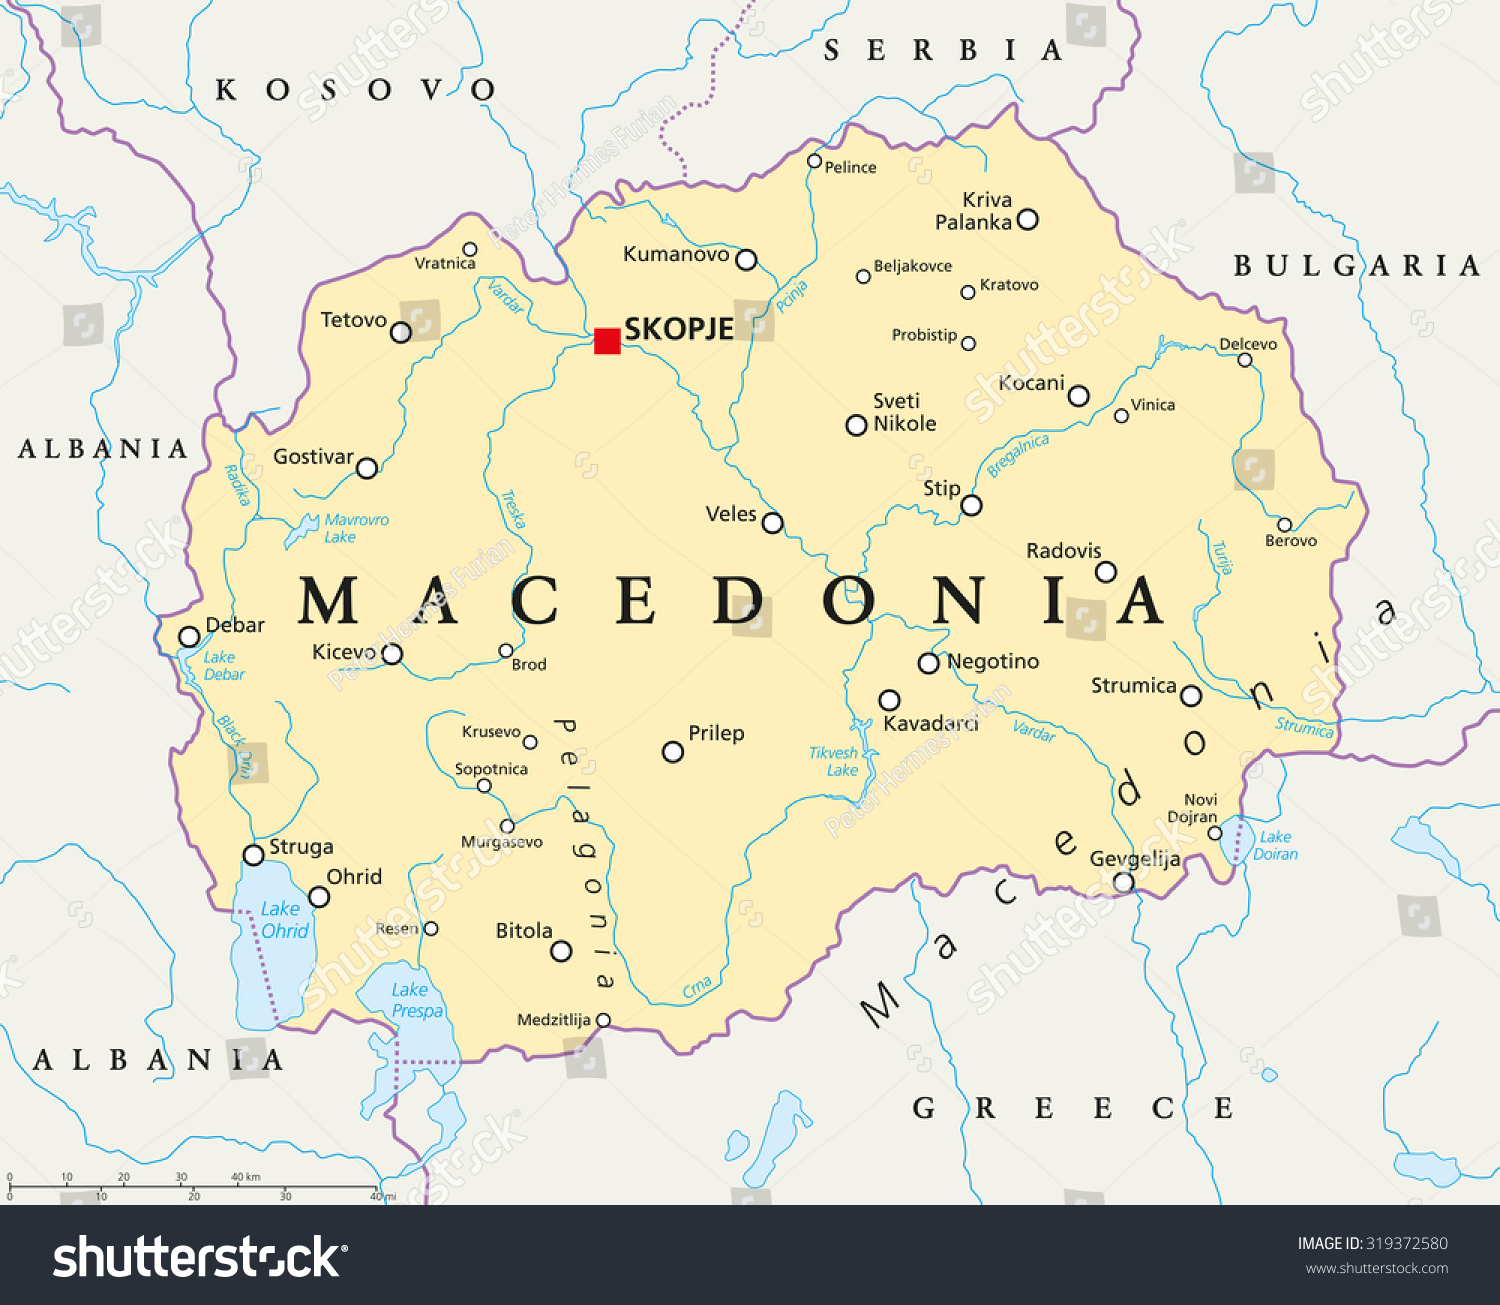 Macedonia Political Map With Capital Skopje National Borders Important Cities Rivers And Lakes